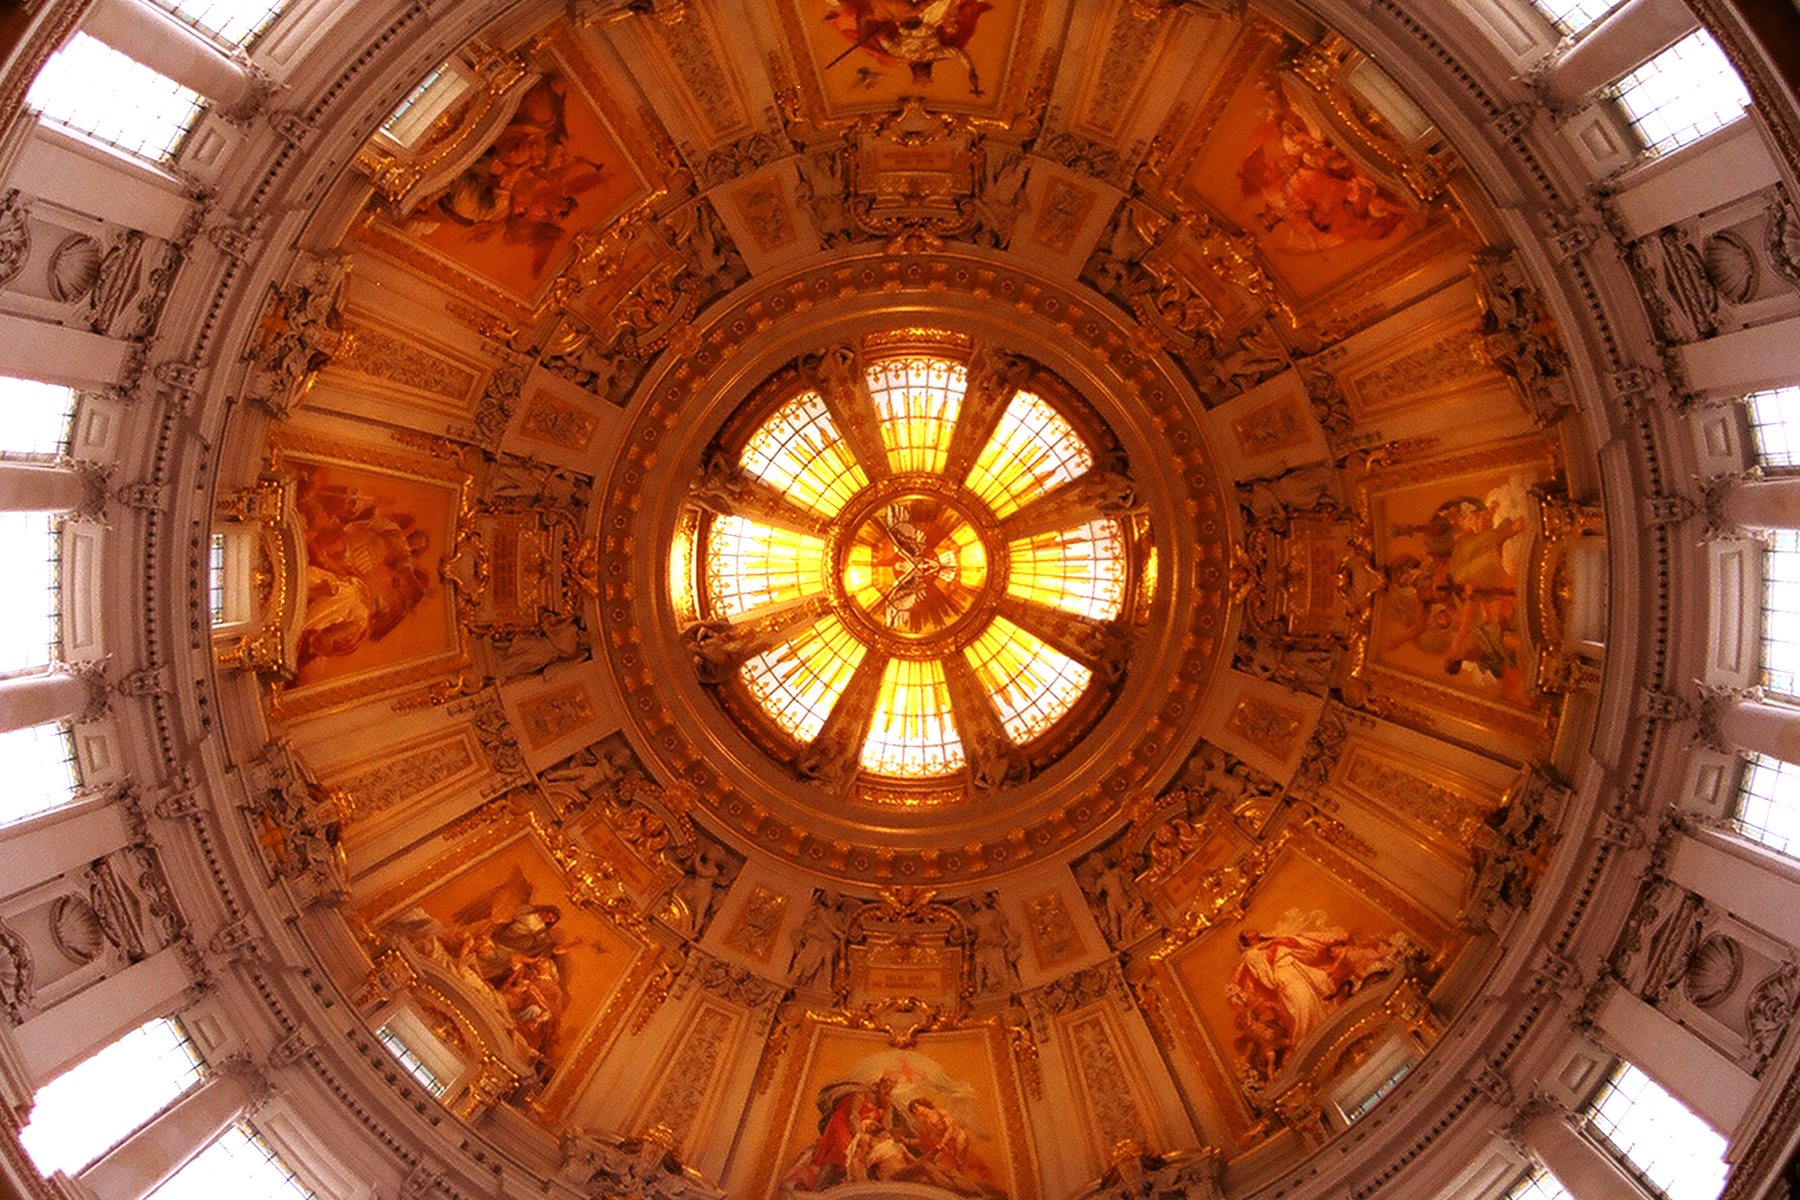 The dome of the Berlin Cathedral